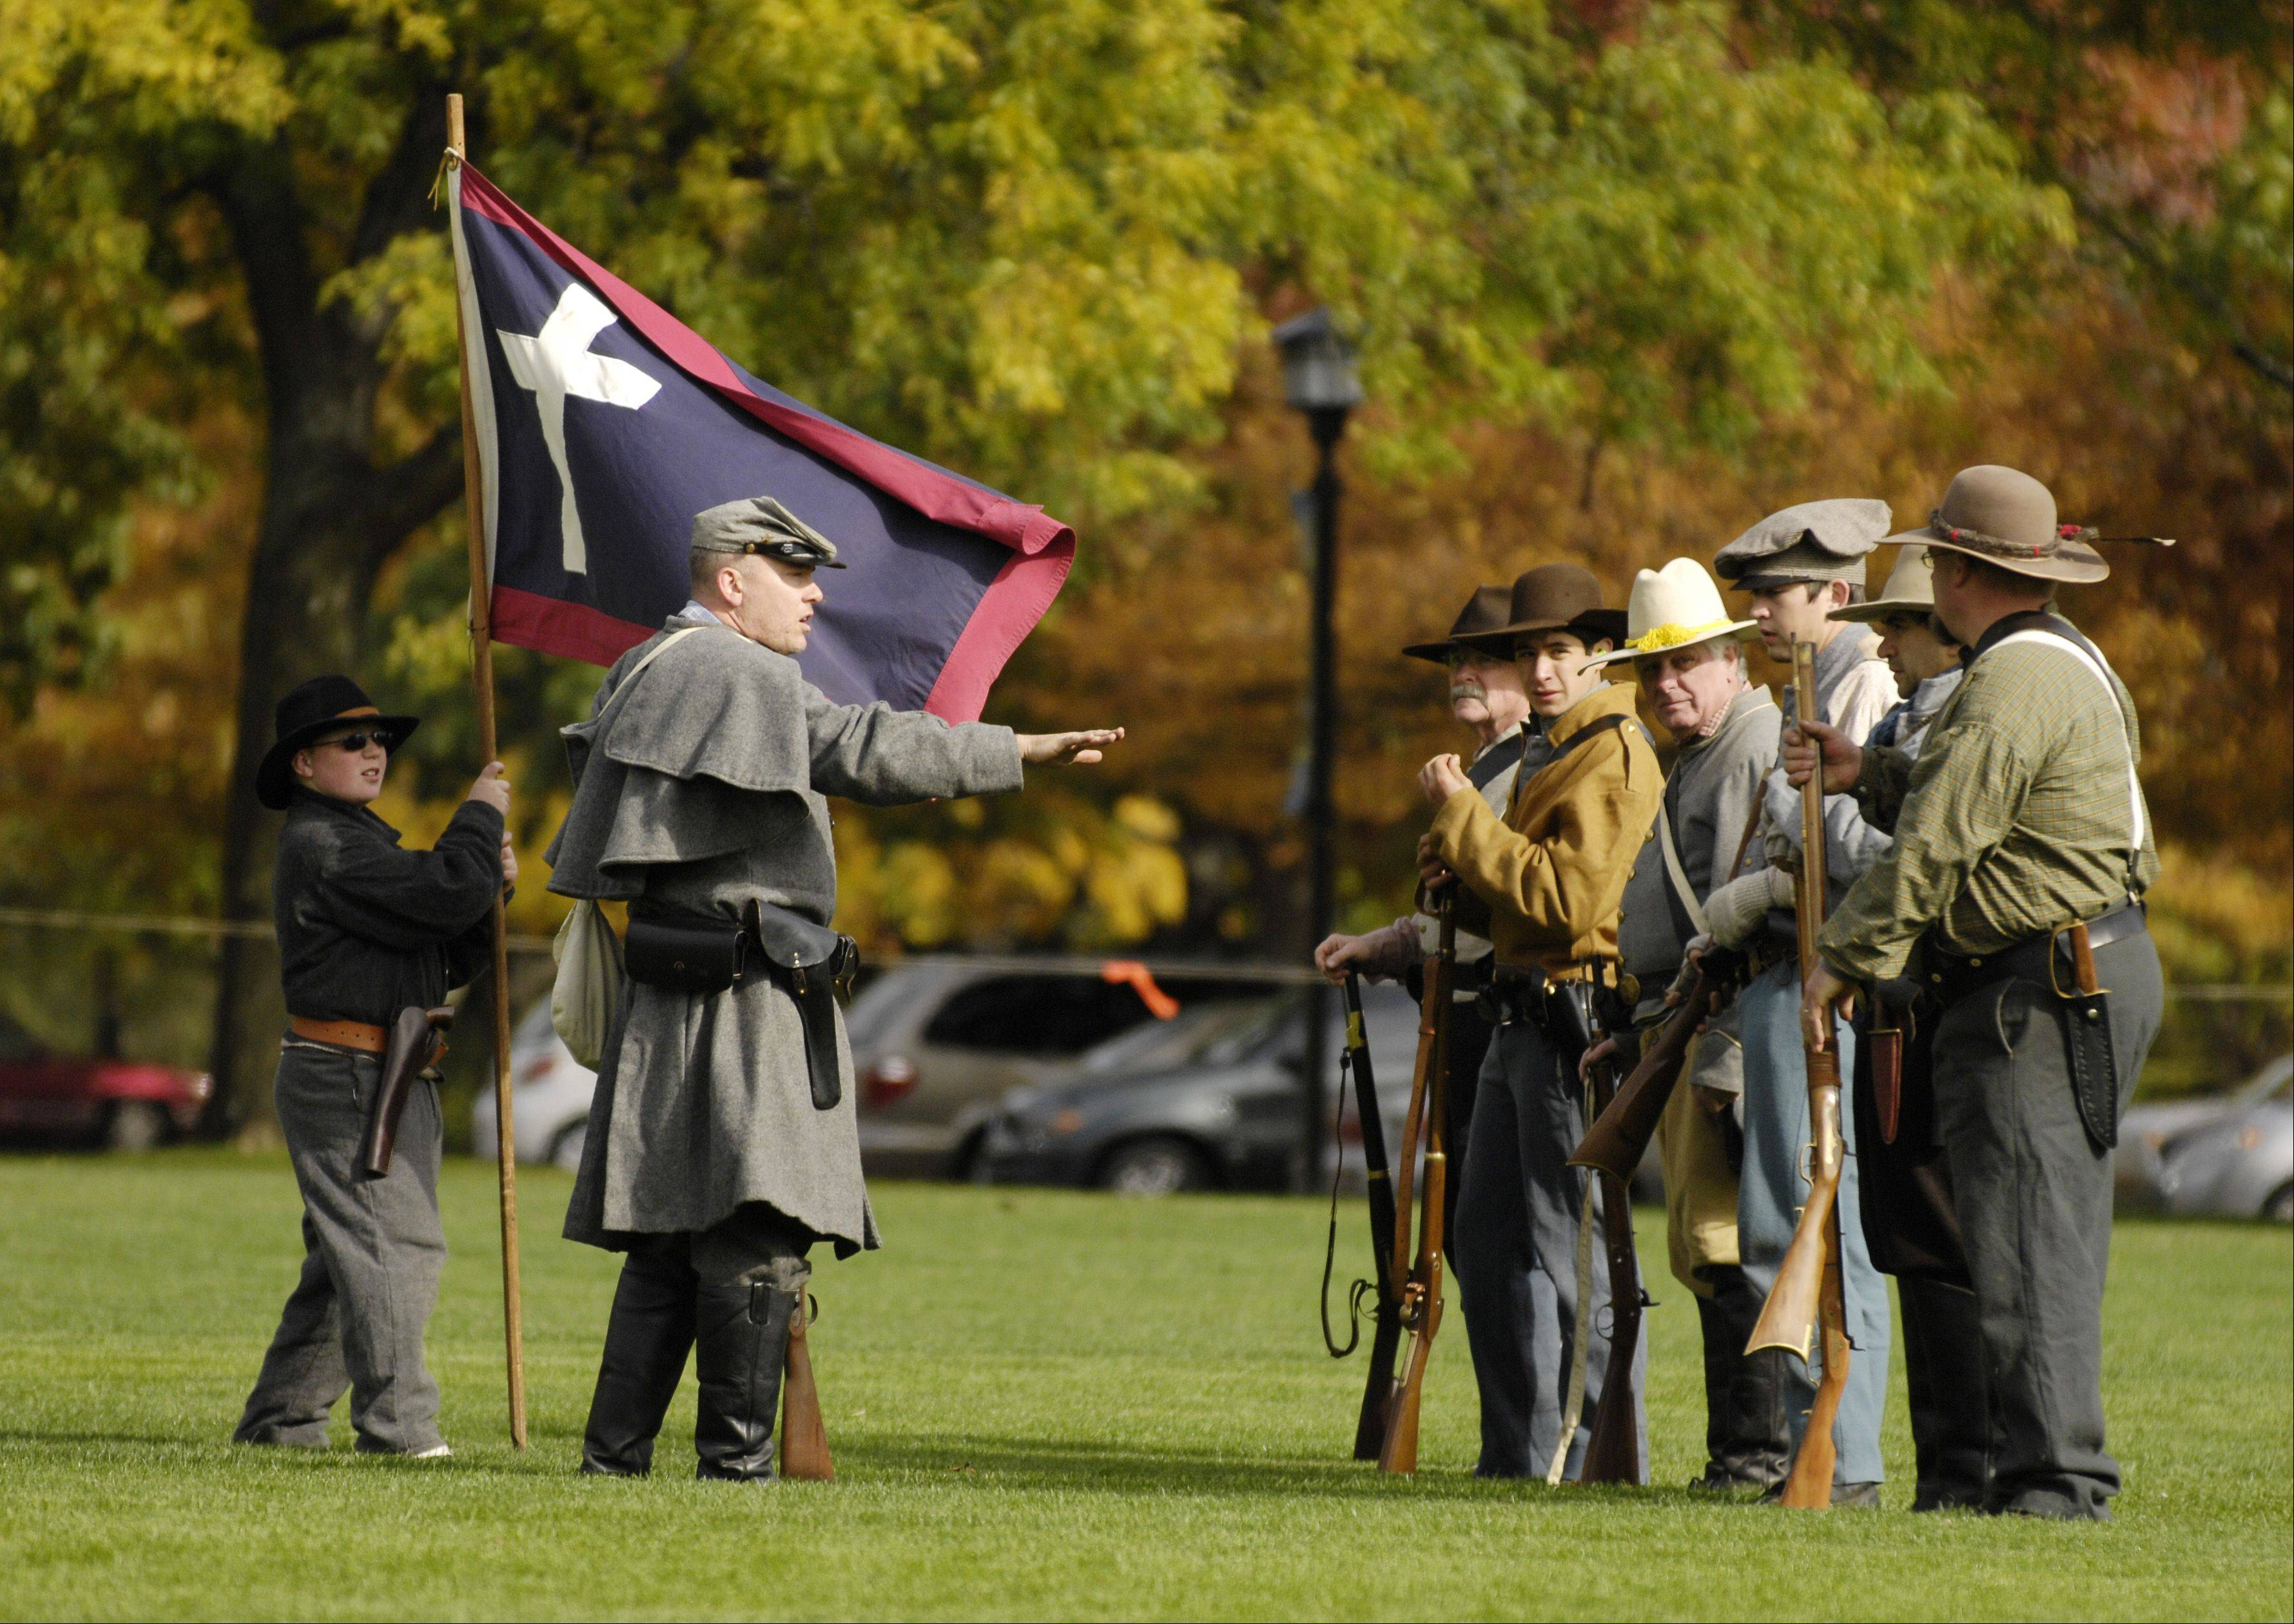 Member of the Confederate Missouri Gorillas perform drills during a Civil War re-enactors camp Sunday at Cantigny Park in Wheaton.